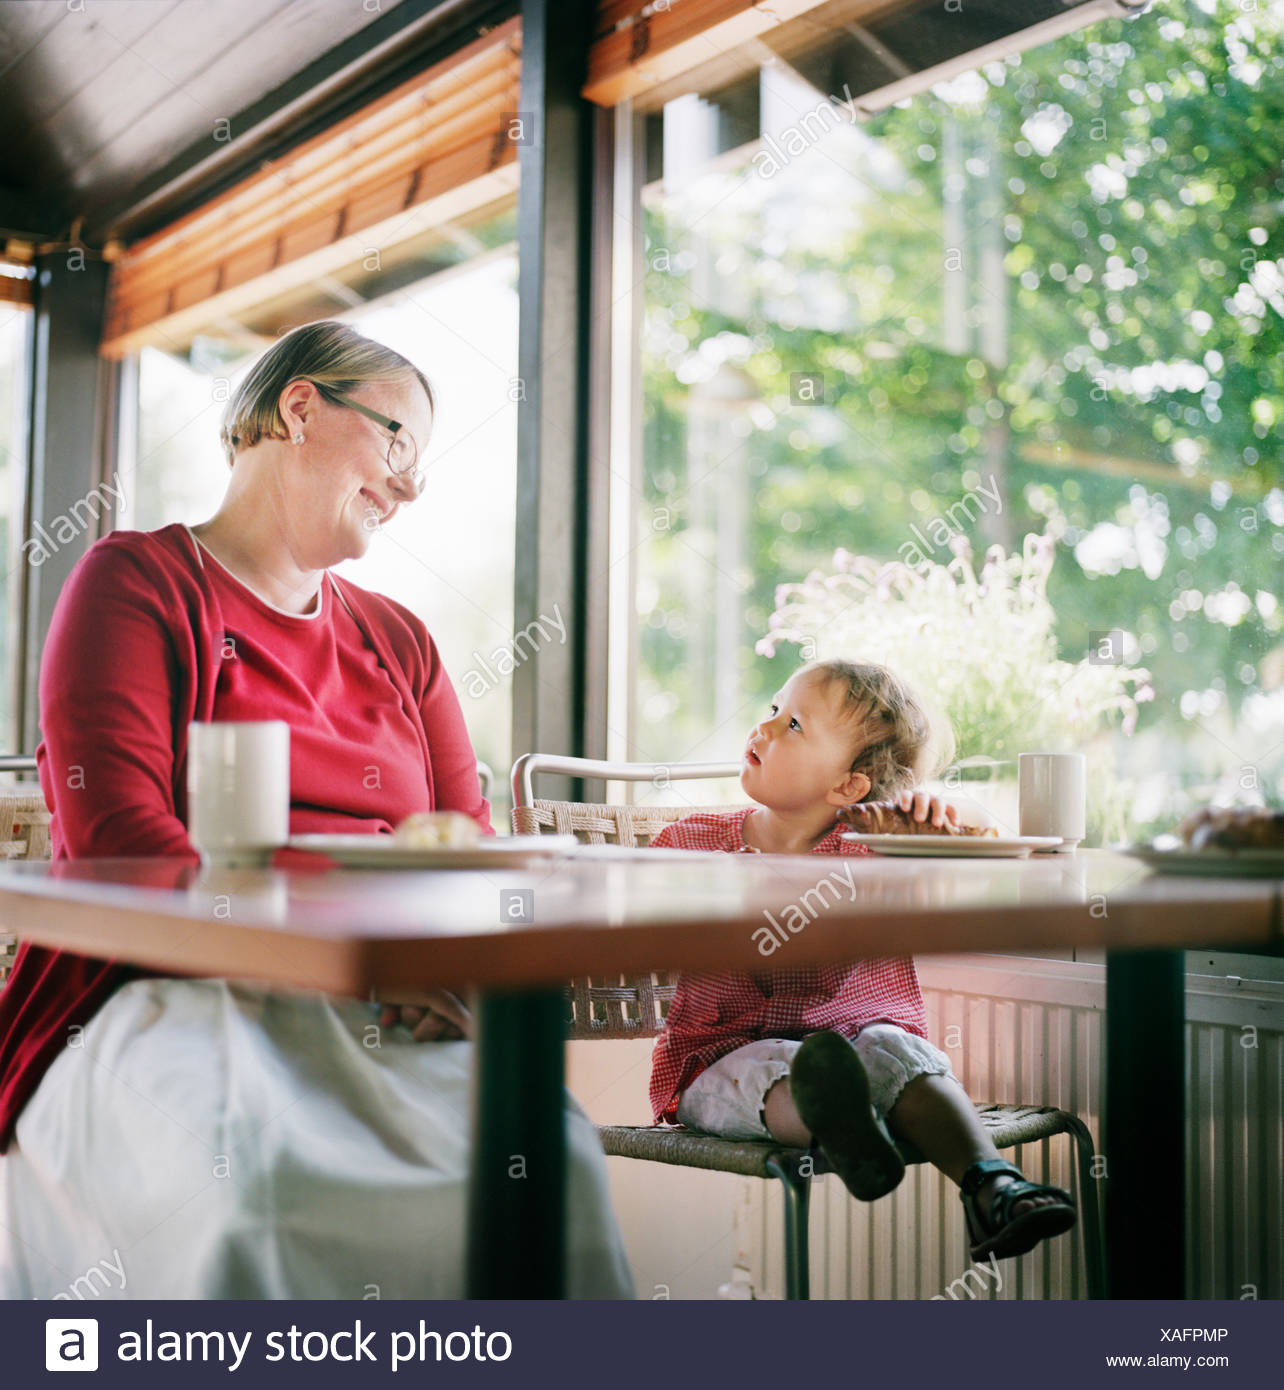 Finland, Helsinki, Uusimaa, Grandmother and granddaughter (2-3) relaxing in cafe - Stock Image